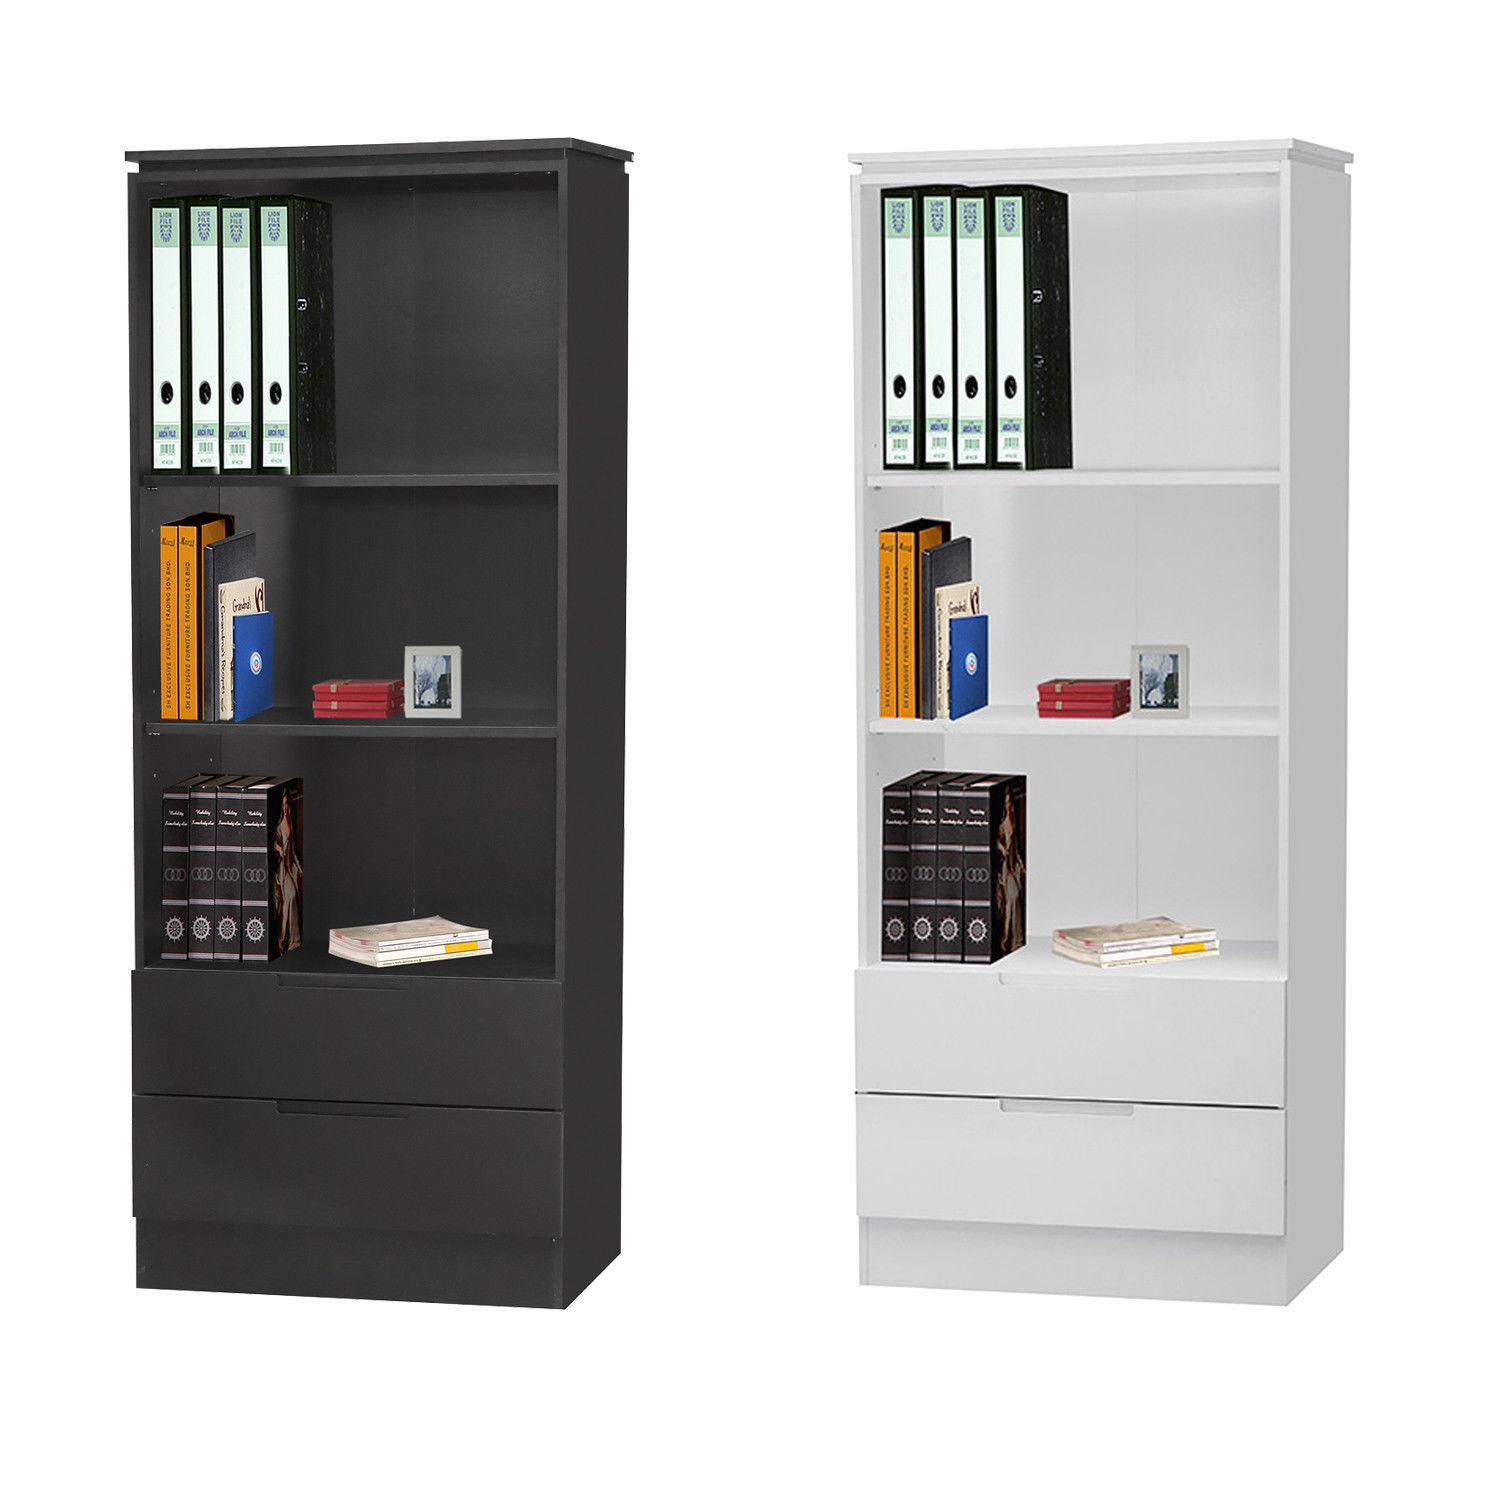 Details About Orb Tall Bookcase With 2 Doors 3 Shelves Modern Design Black Or White